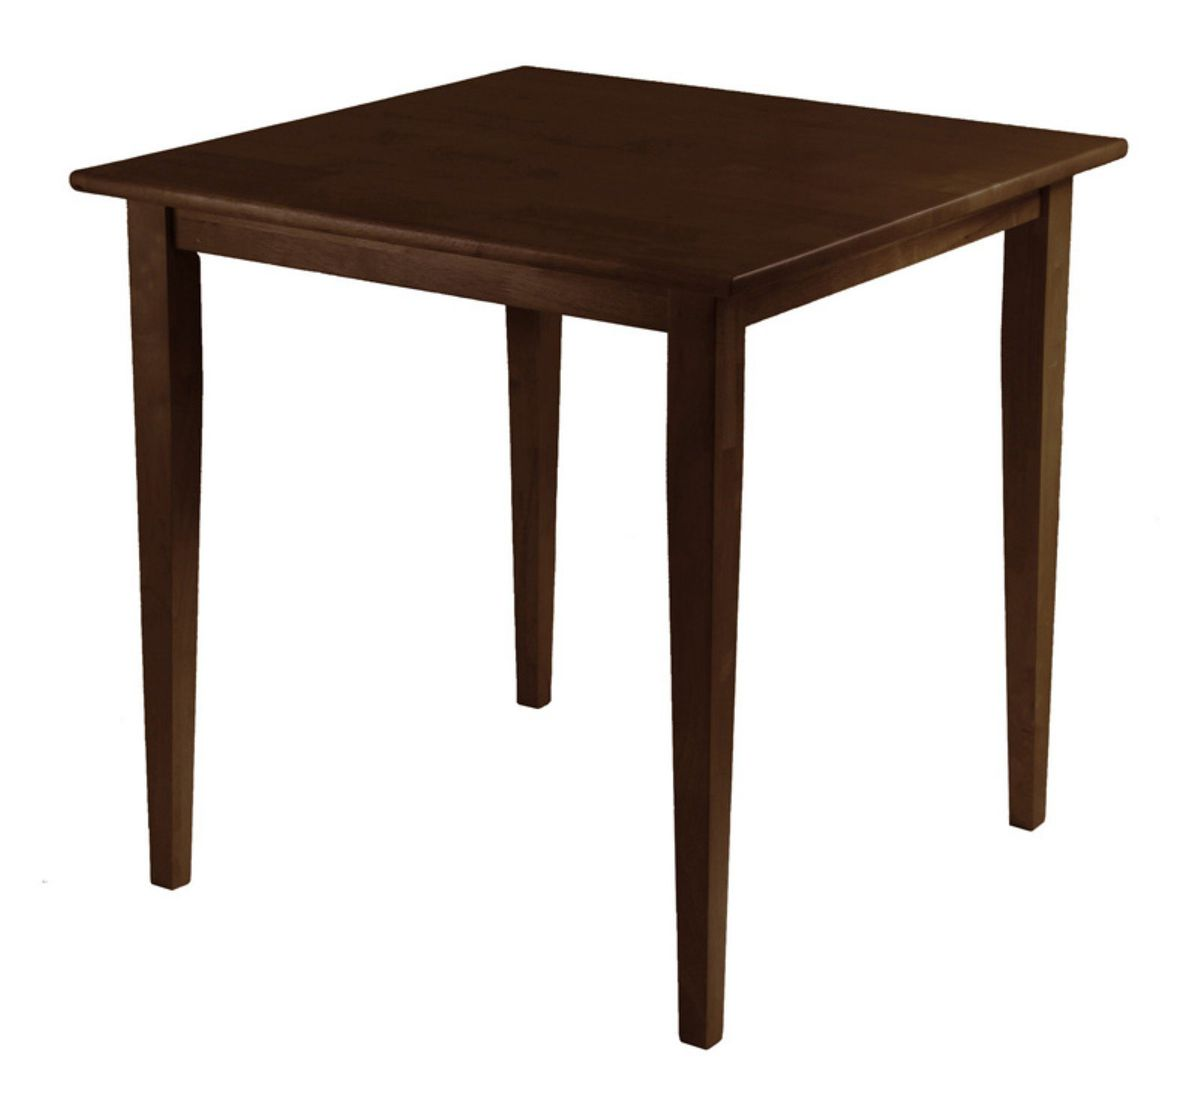 A dark wood square table with four legs.